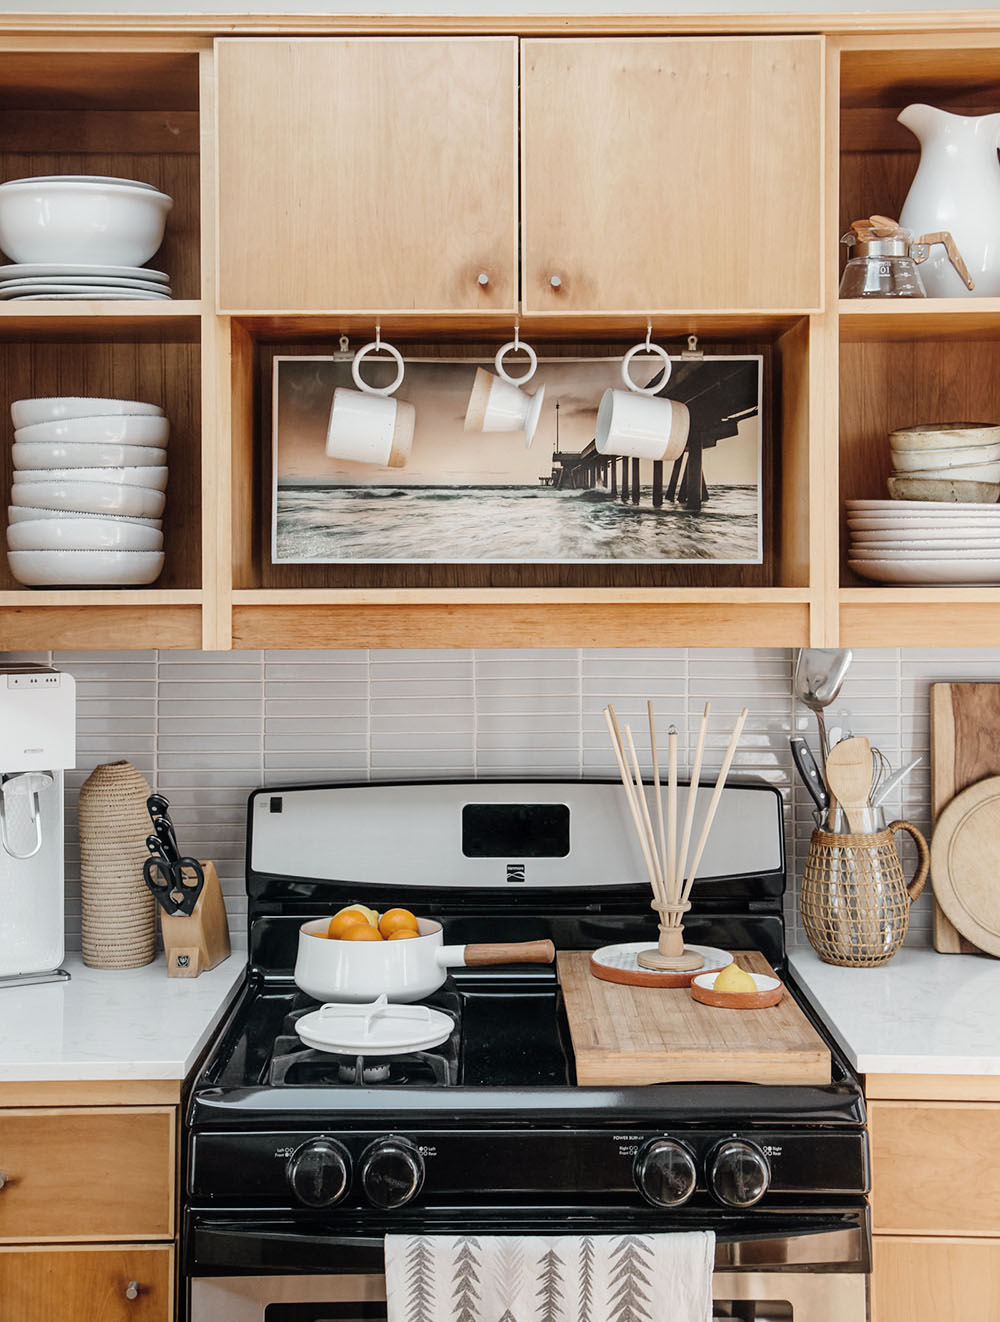 Photo of the Cottage kitchen taken by Lily Glass for  SFGirlbyBay